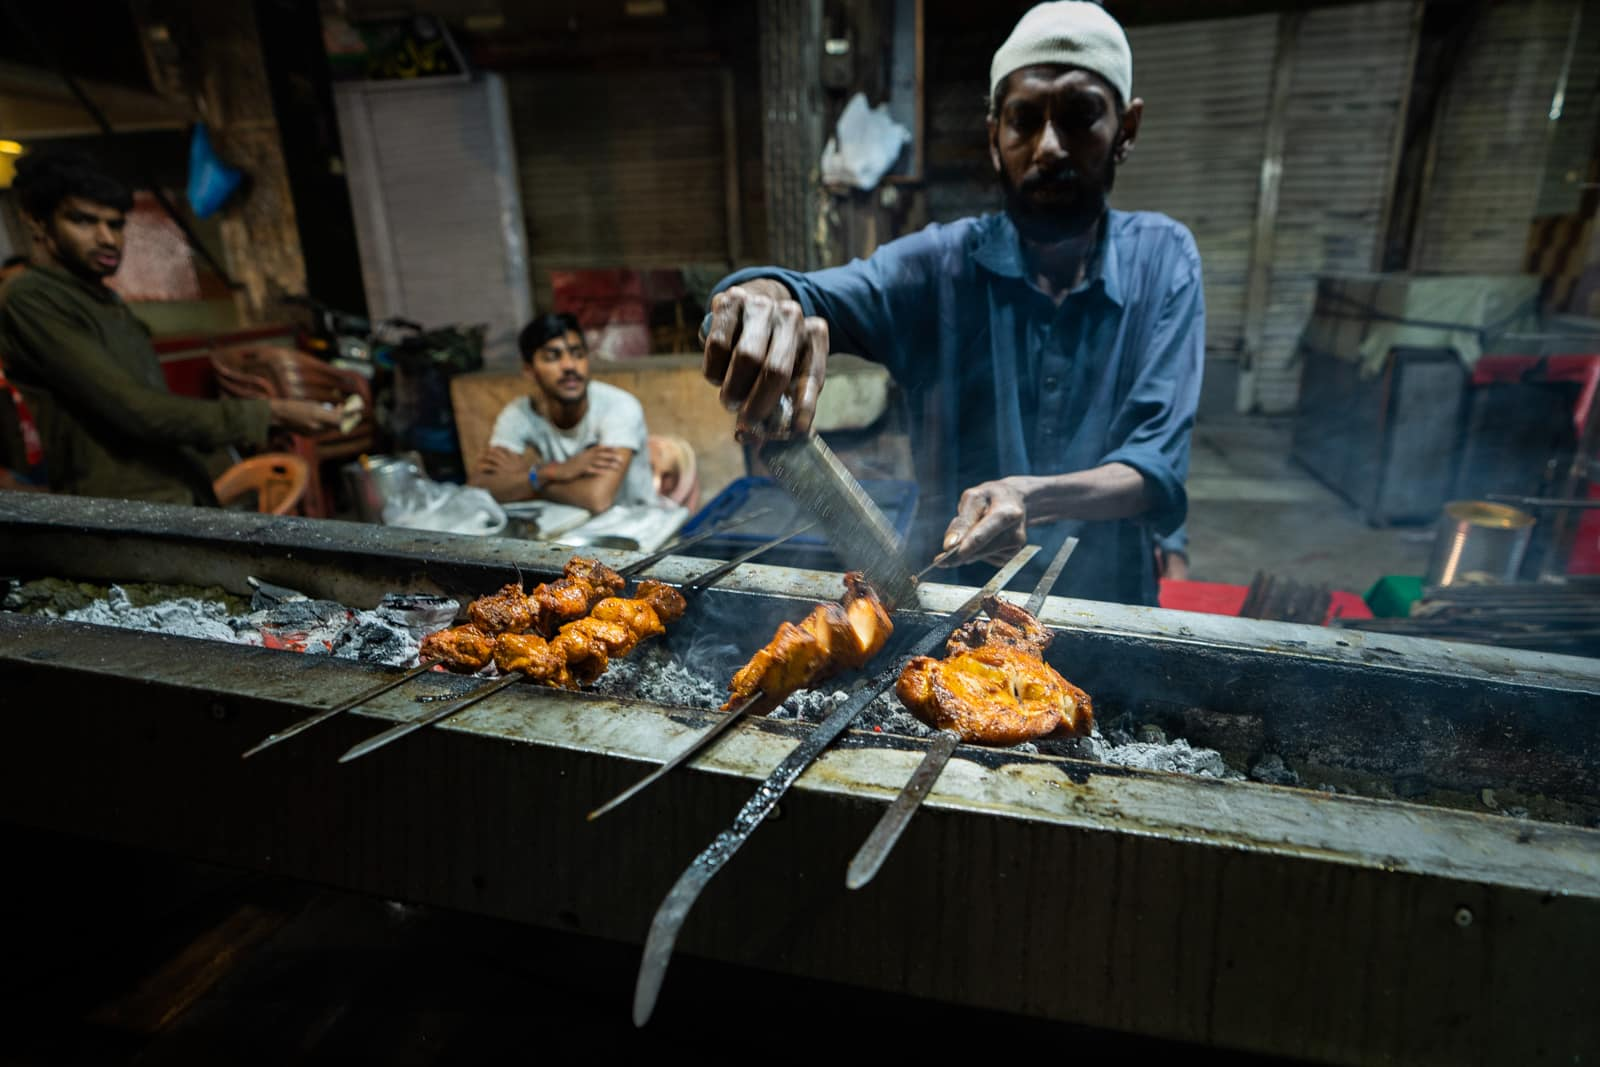 Unique things to do in Lahore - Kebabs cooking in the Walled City of Lahore